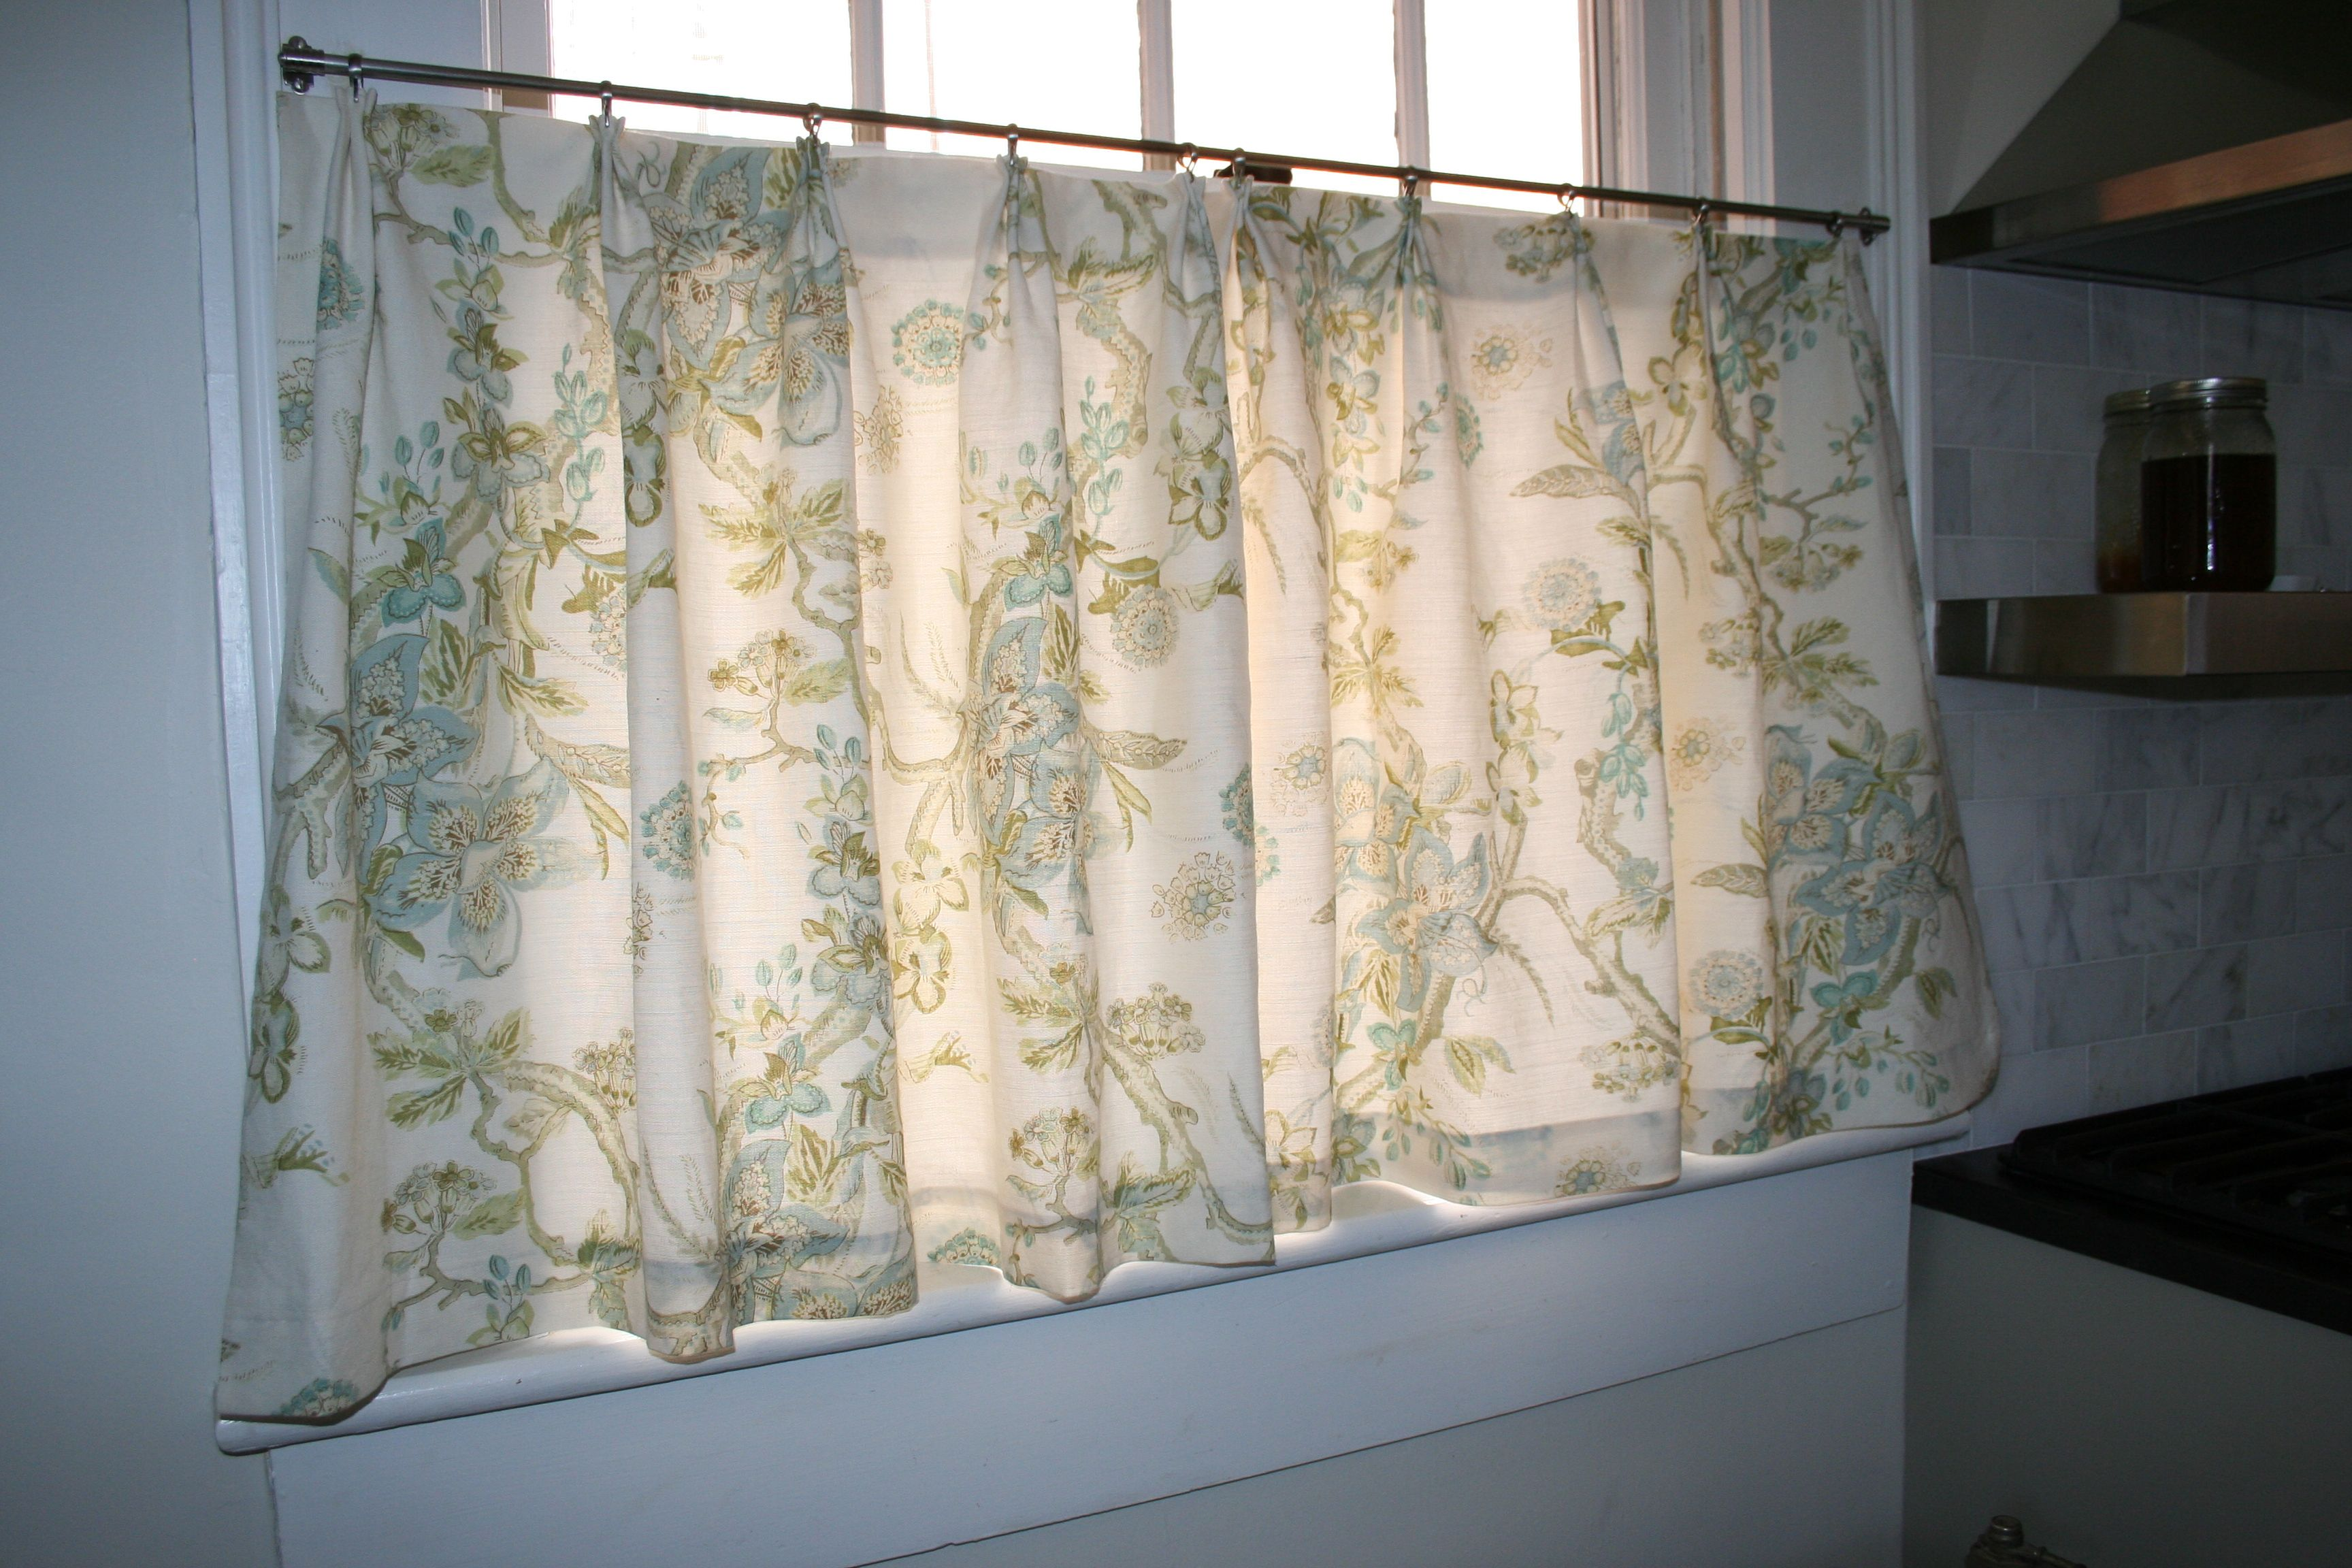 Cafe Curtain Fabric Aquitaine Limonia In Marble Already Have This